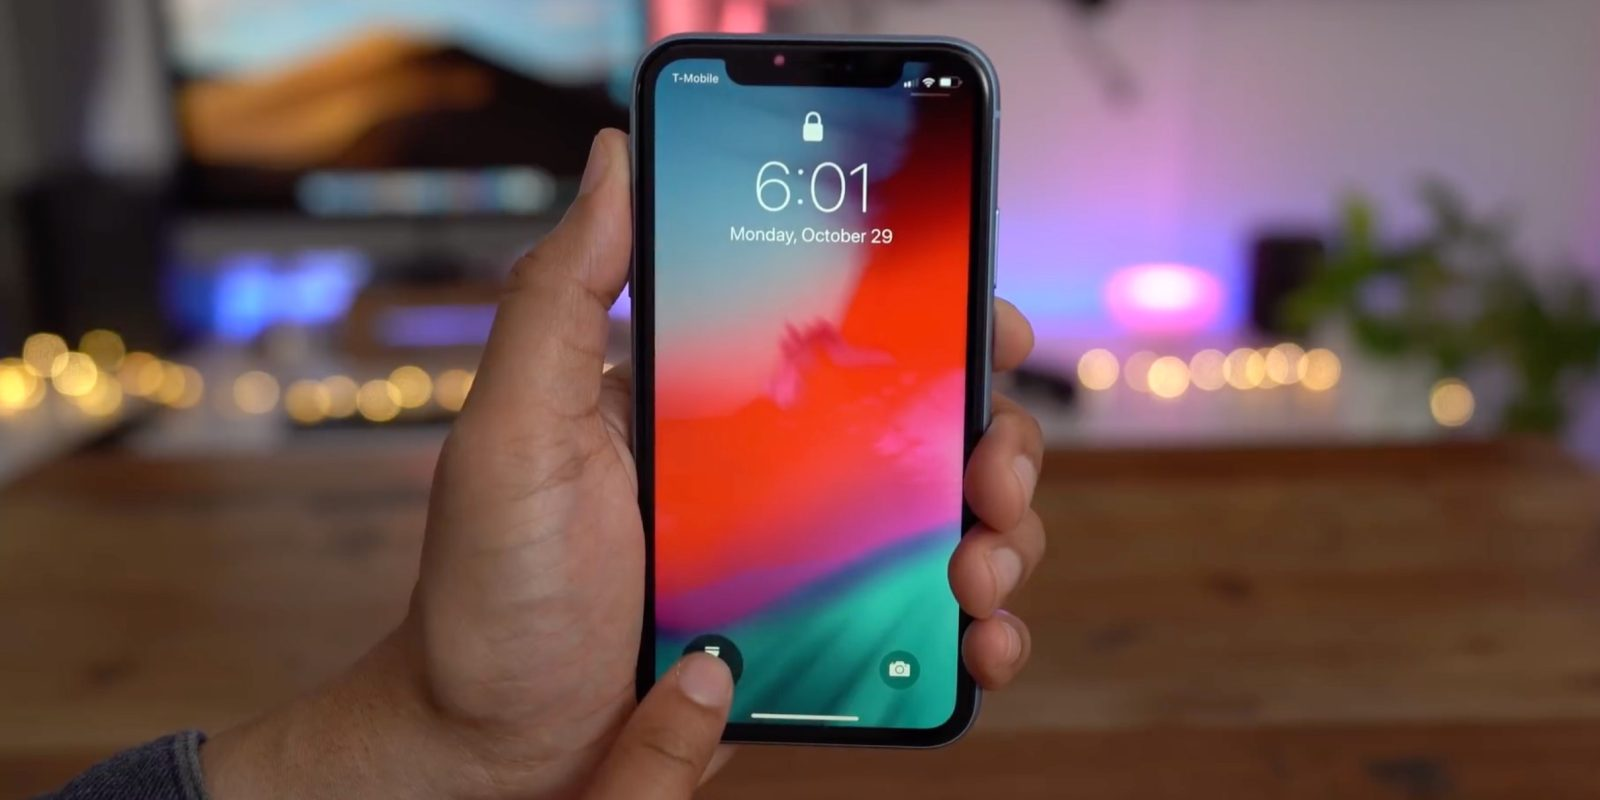 iOS 12.1.2 adds settings menu to change Haptic Touch gesture duration